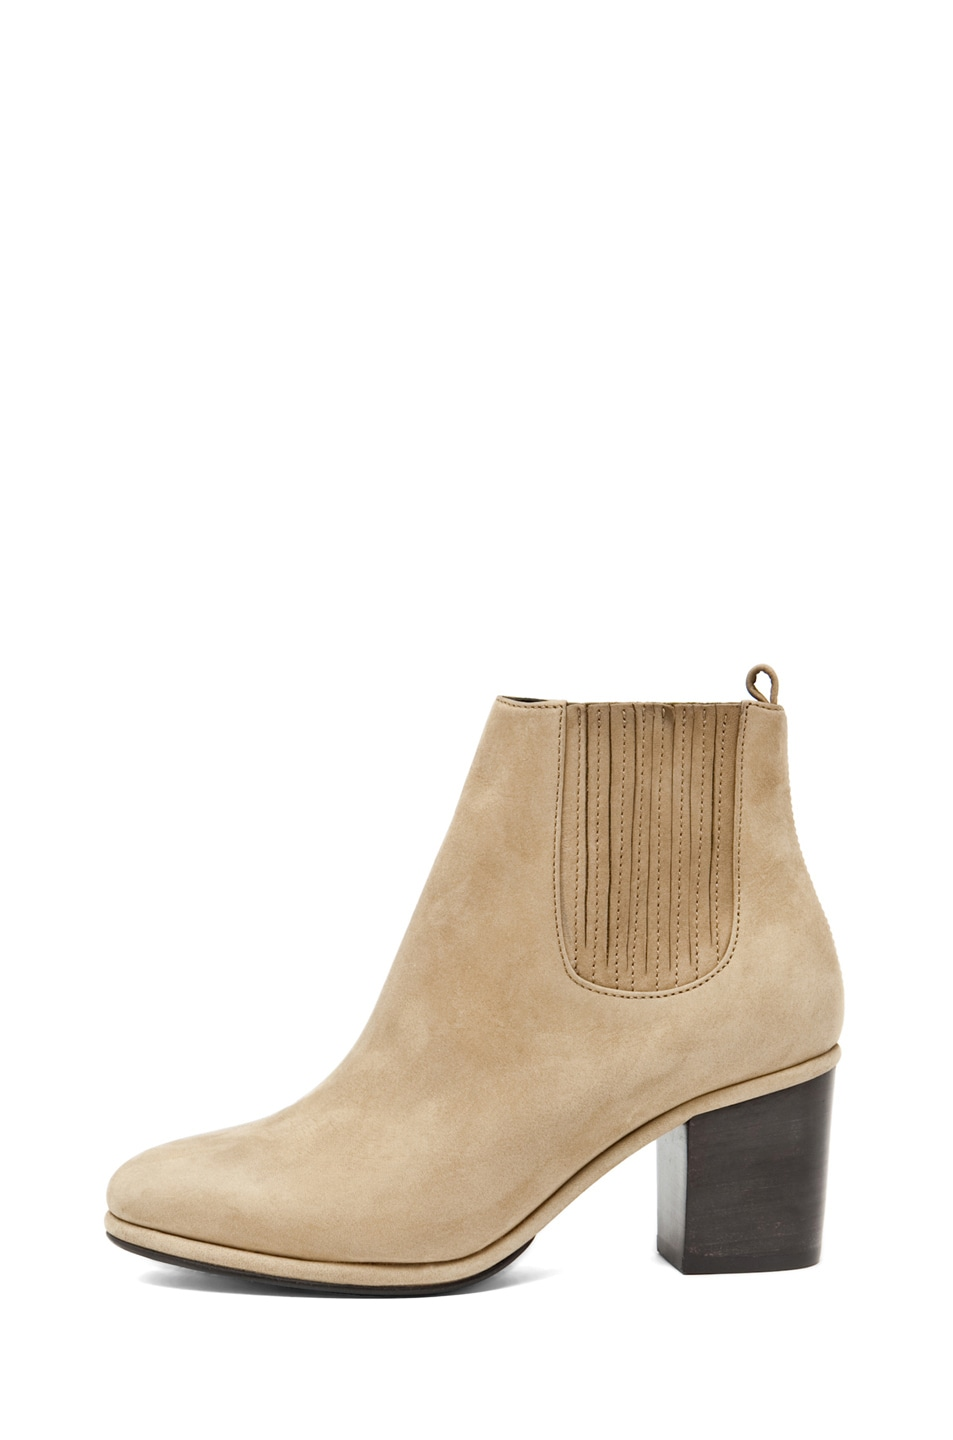 Image 1 of Opening Ceremony Brenda Bootie in Olive